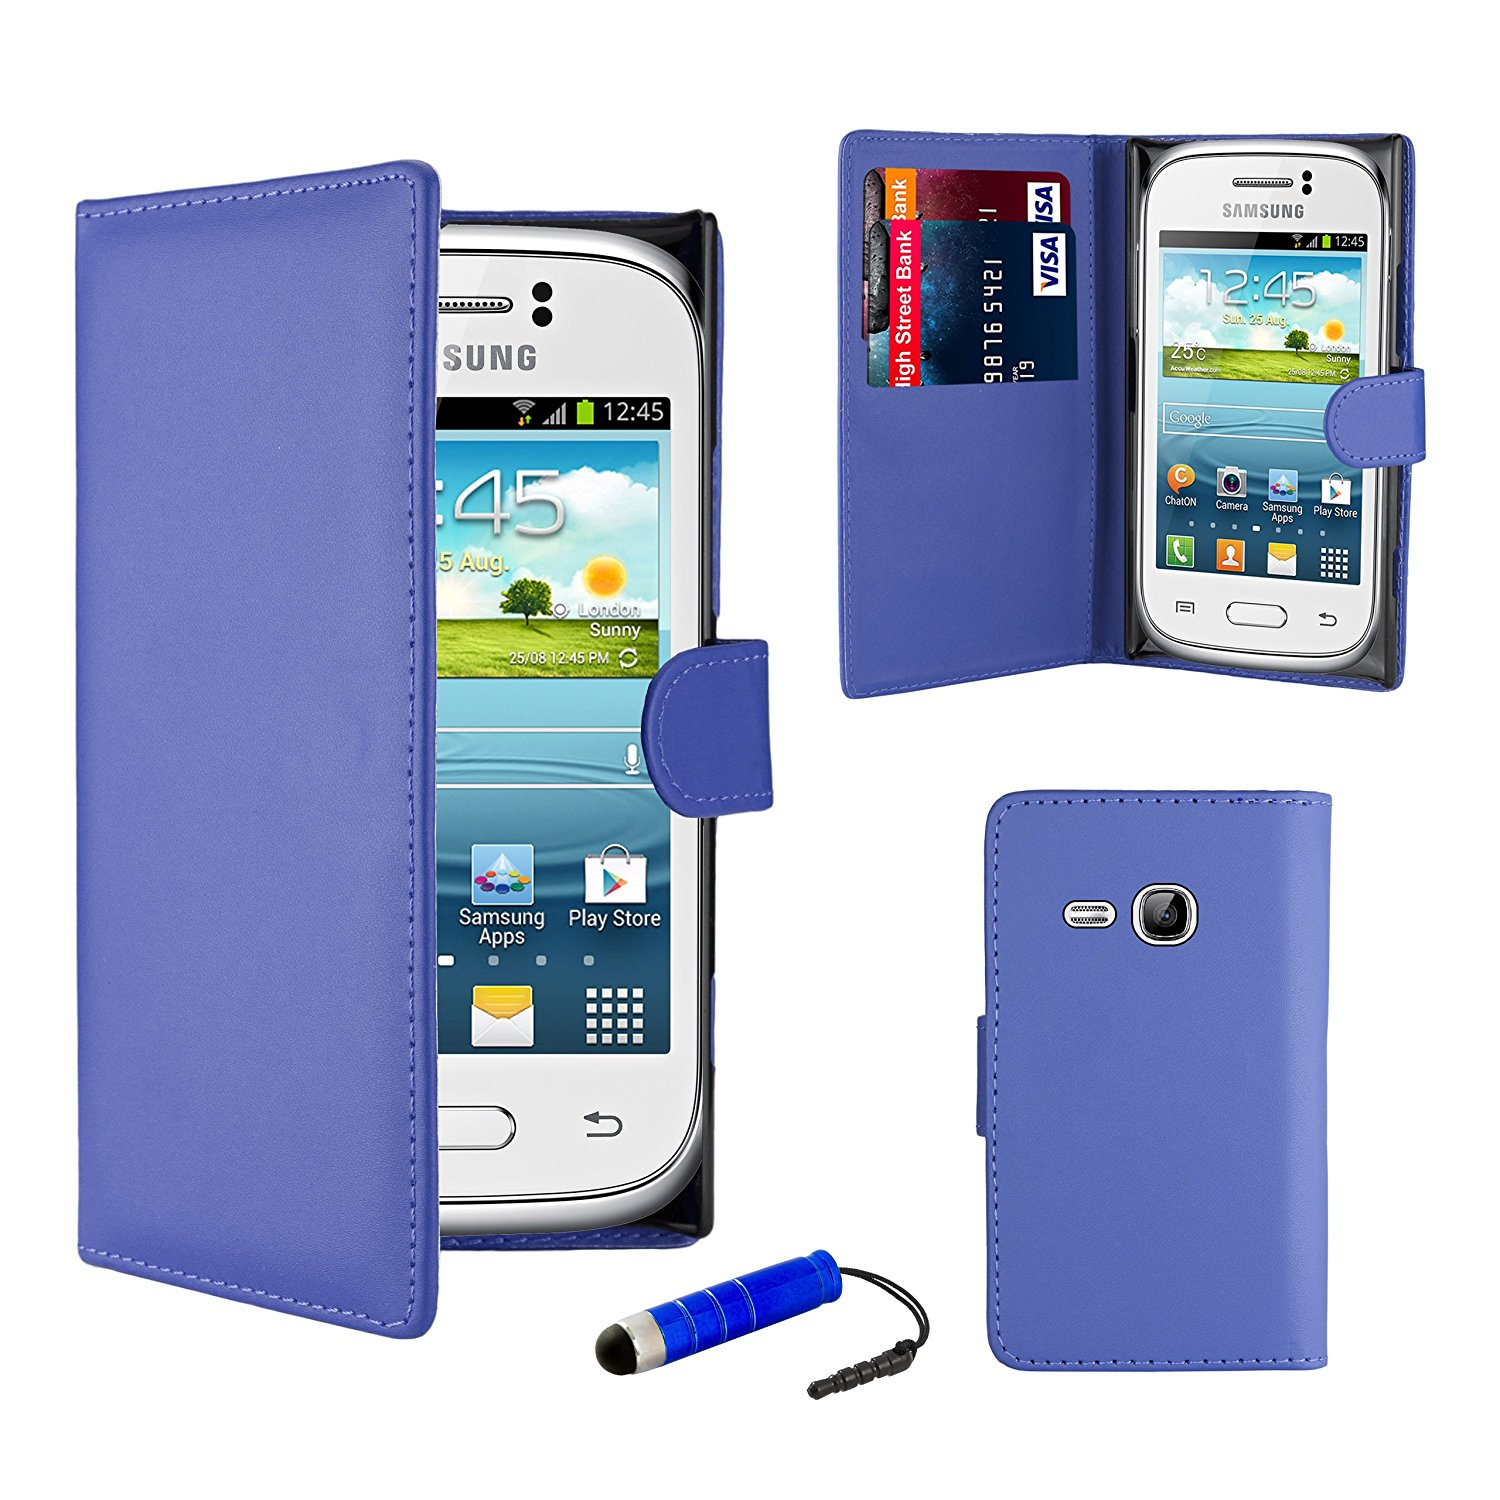 Cheap Samsung Young New S6310 Find Deals On Galaxy Get Quotations 32nd Book Wallet Pu Leather Case Cover For Including Screen Protector